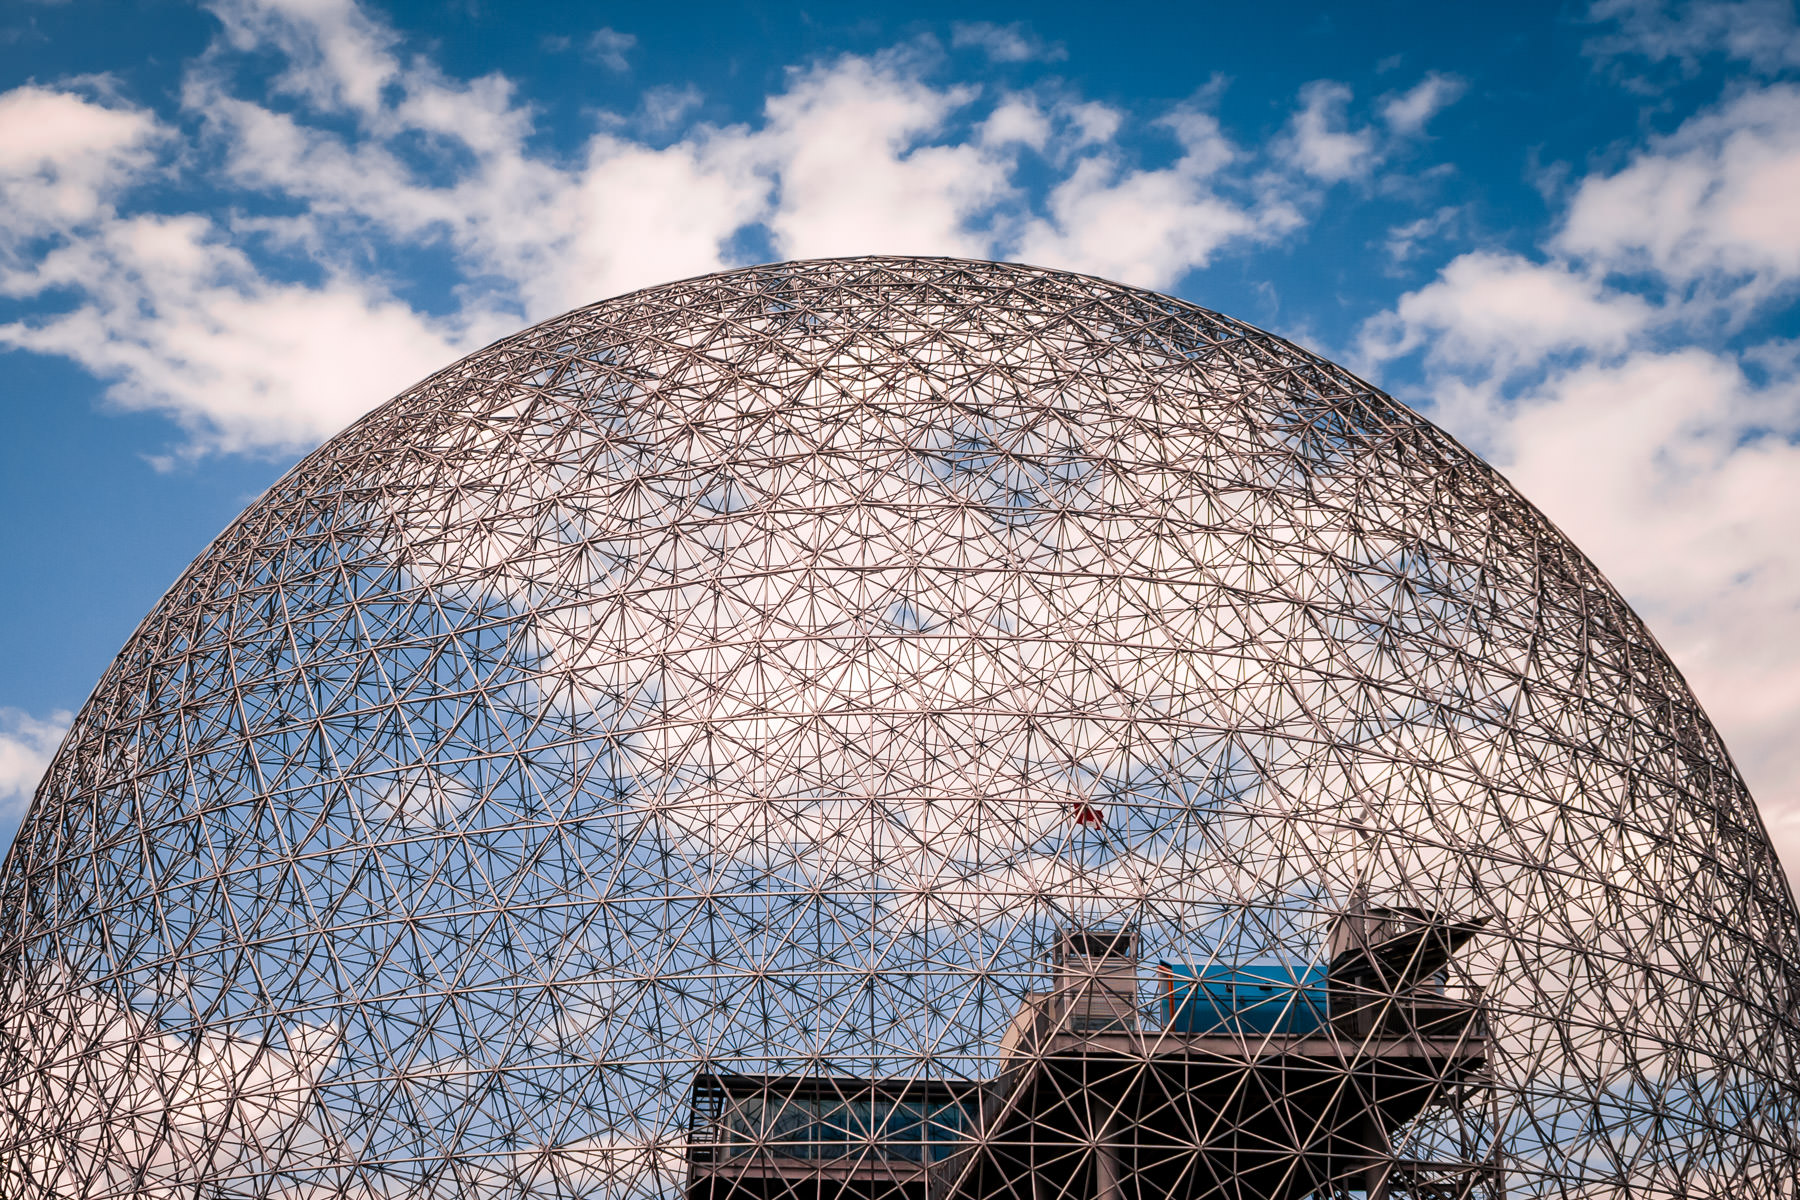 Montréal's Biosphére, the re-purposed Buckminster Fuller-designed Expo '67 United States Pavilion